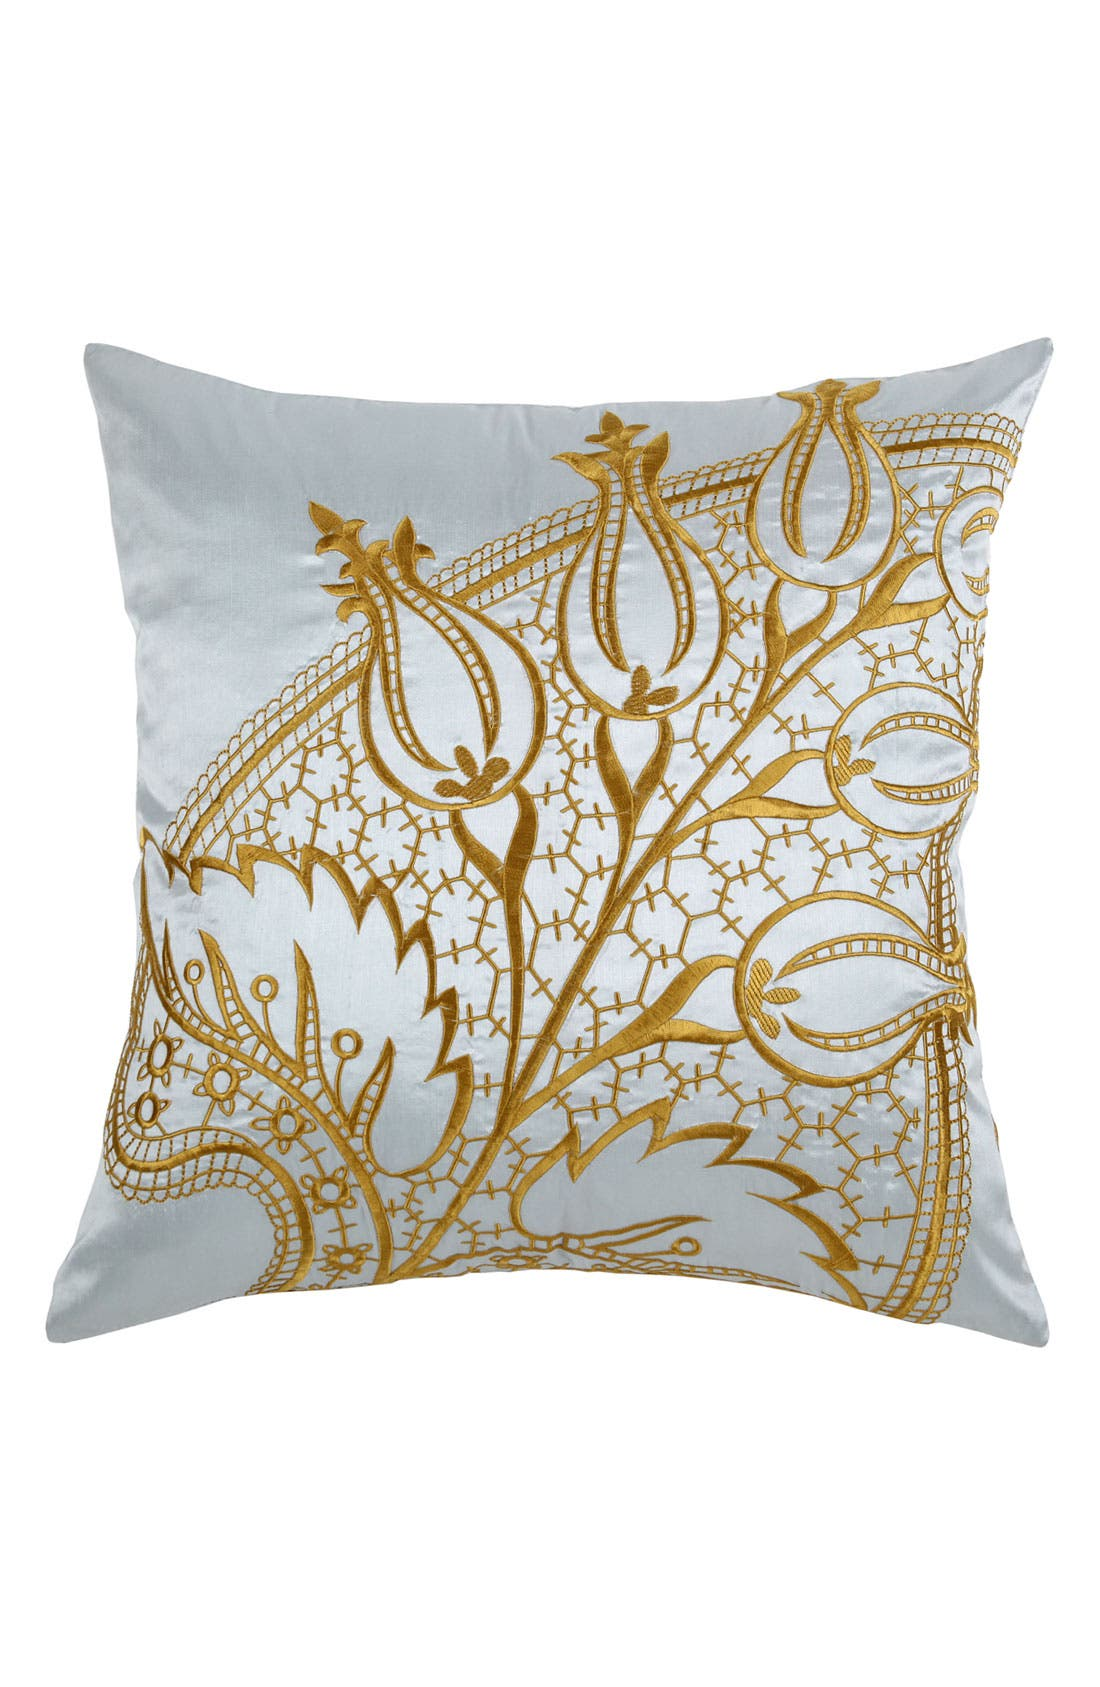 Alternate Image 1 Selected - Blissliving Home 'Avenida' Pillow (Online Only)